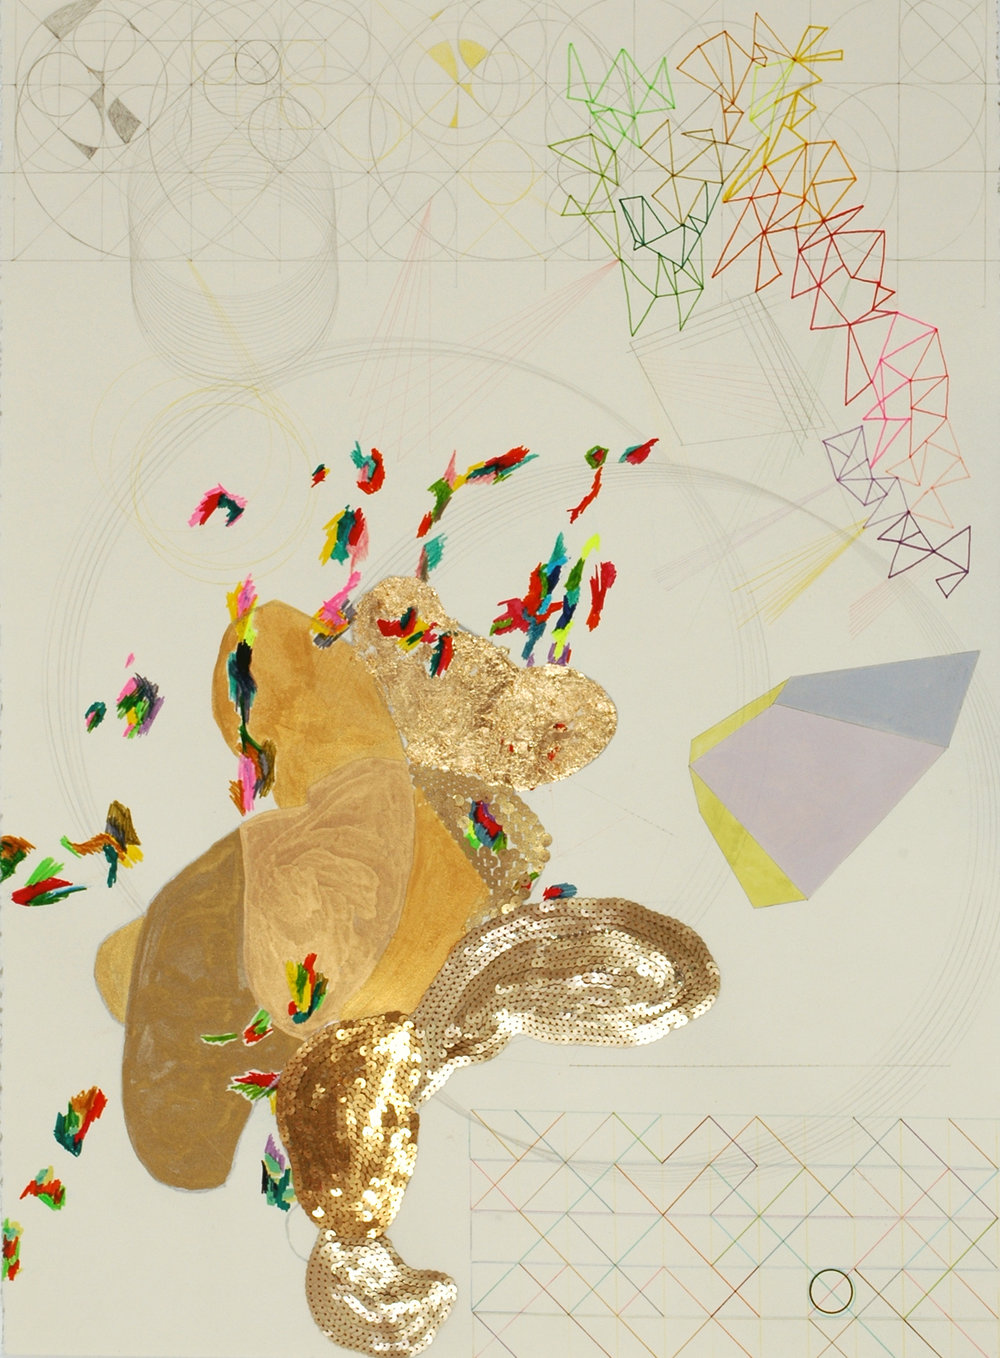 Phosphor    (   2007)    Japanese Watercolour, Acrylic Polymer, Gold Leaf, Texta Marker, Graphite, Pencil, Sequins on Stonehenge Paper,    76.5 x 56.5 cm